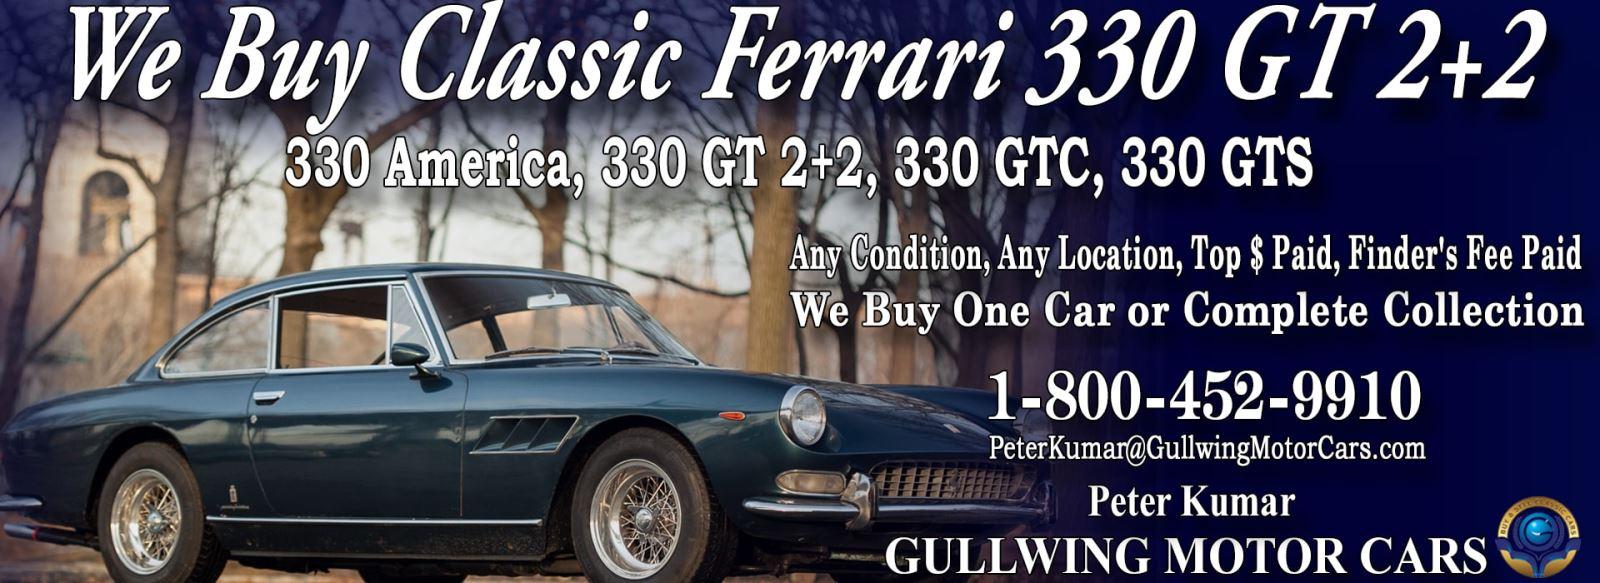 Classic Ferrari 330 GT 2+2 for sale, we buy vintage Ferrari 330 GT. Call Peter Kumar. Gullwing Motor